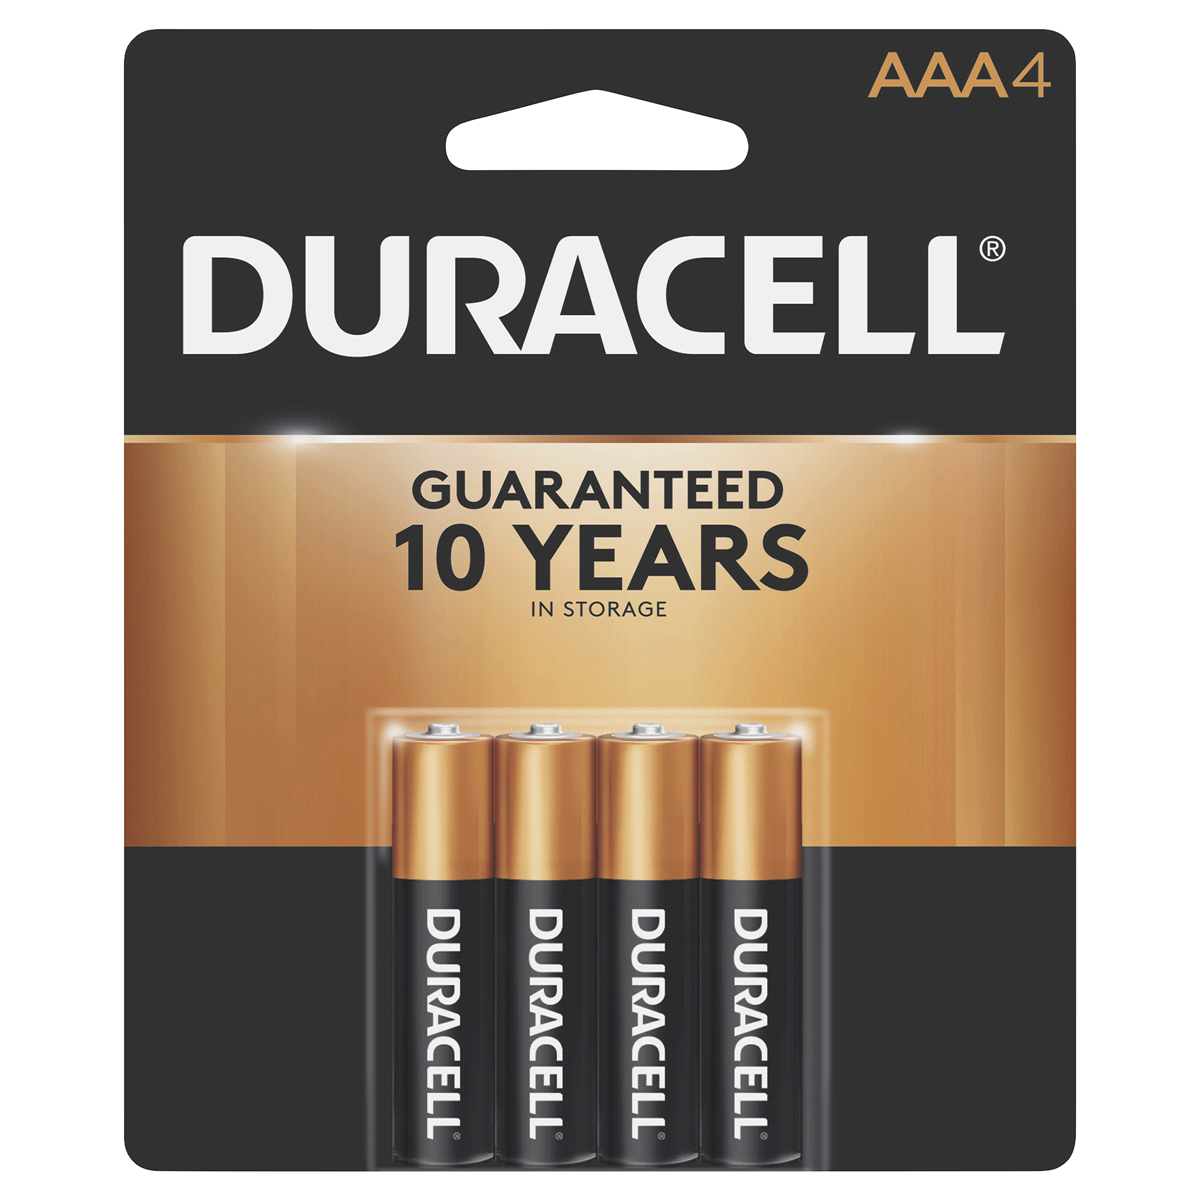 Cover Image For Duracell AAA Batteries